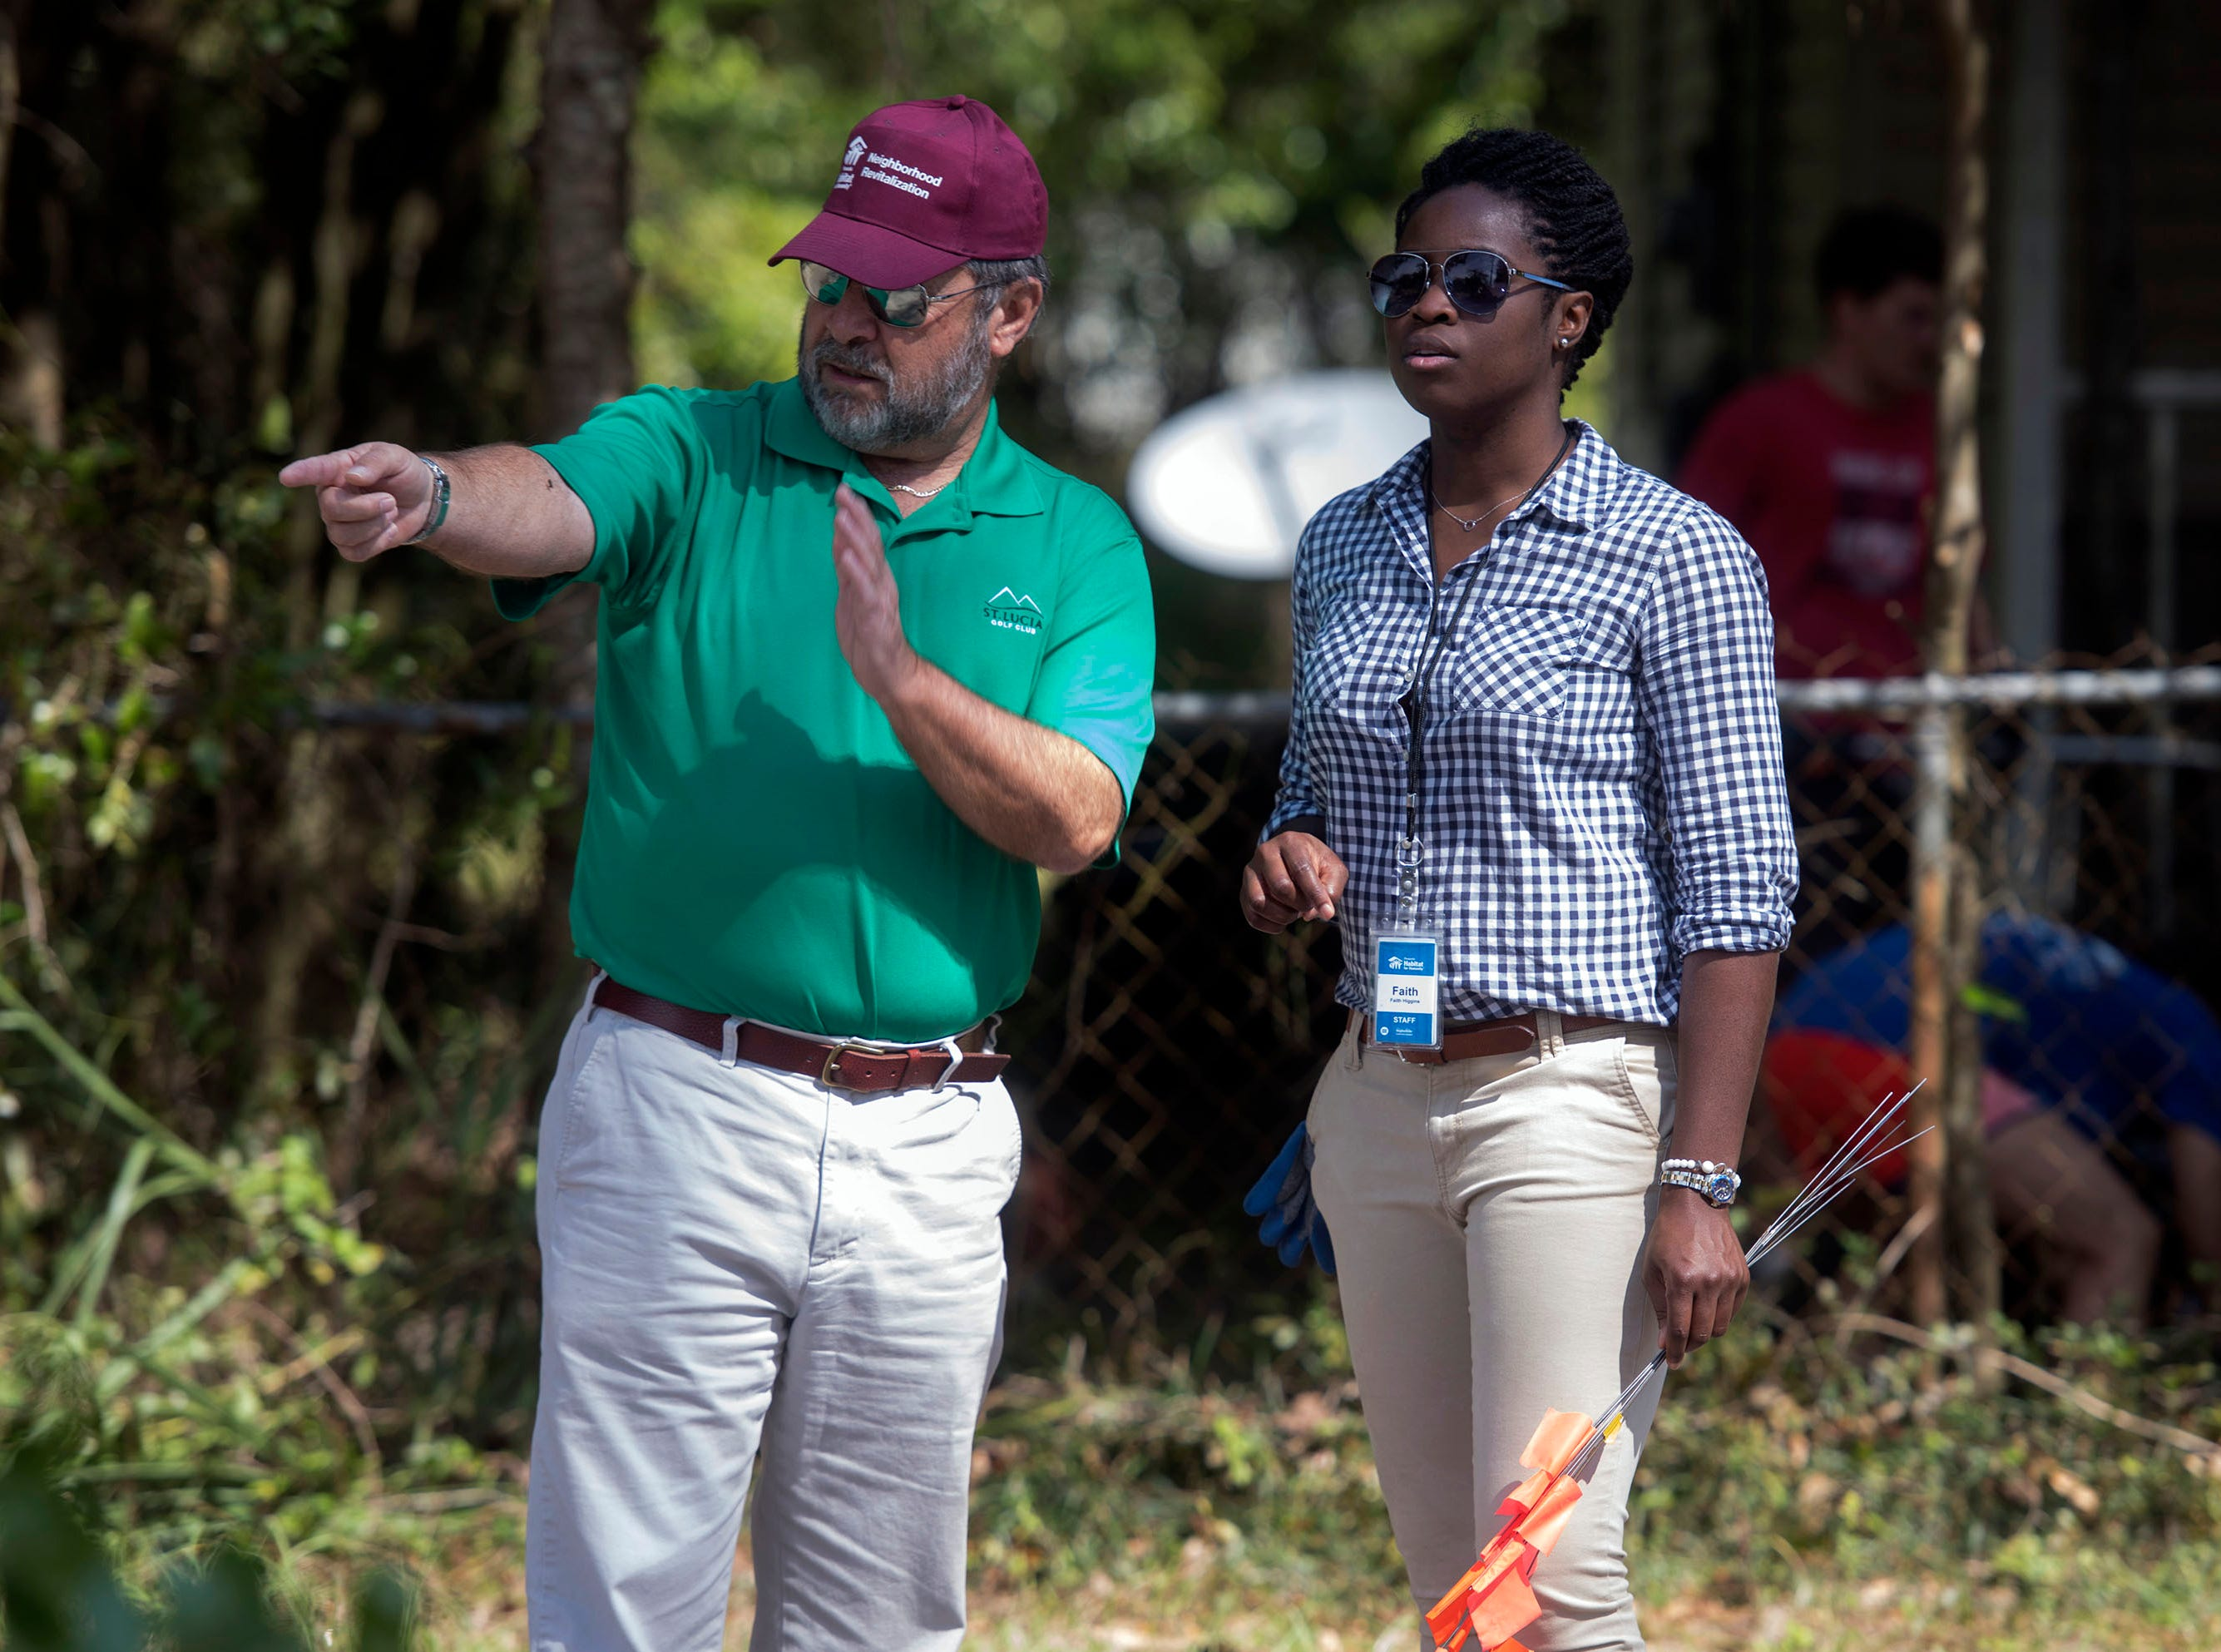 Joe Ocobock and Faith Higgins of Habitat for Humanity of Pensacola work with Keep Pensacola Beautiful, volunteers from Call to Greatness, the City of Pensacola and Escambia County to help revitalize the Brownsville area during the inaugural Rock the Block event on Tuesday, March 12, 2019.